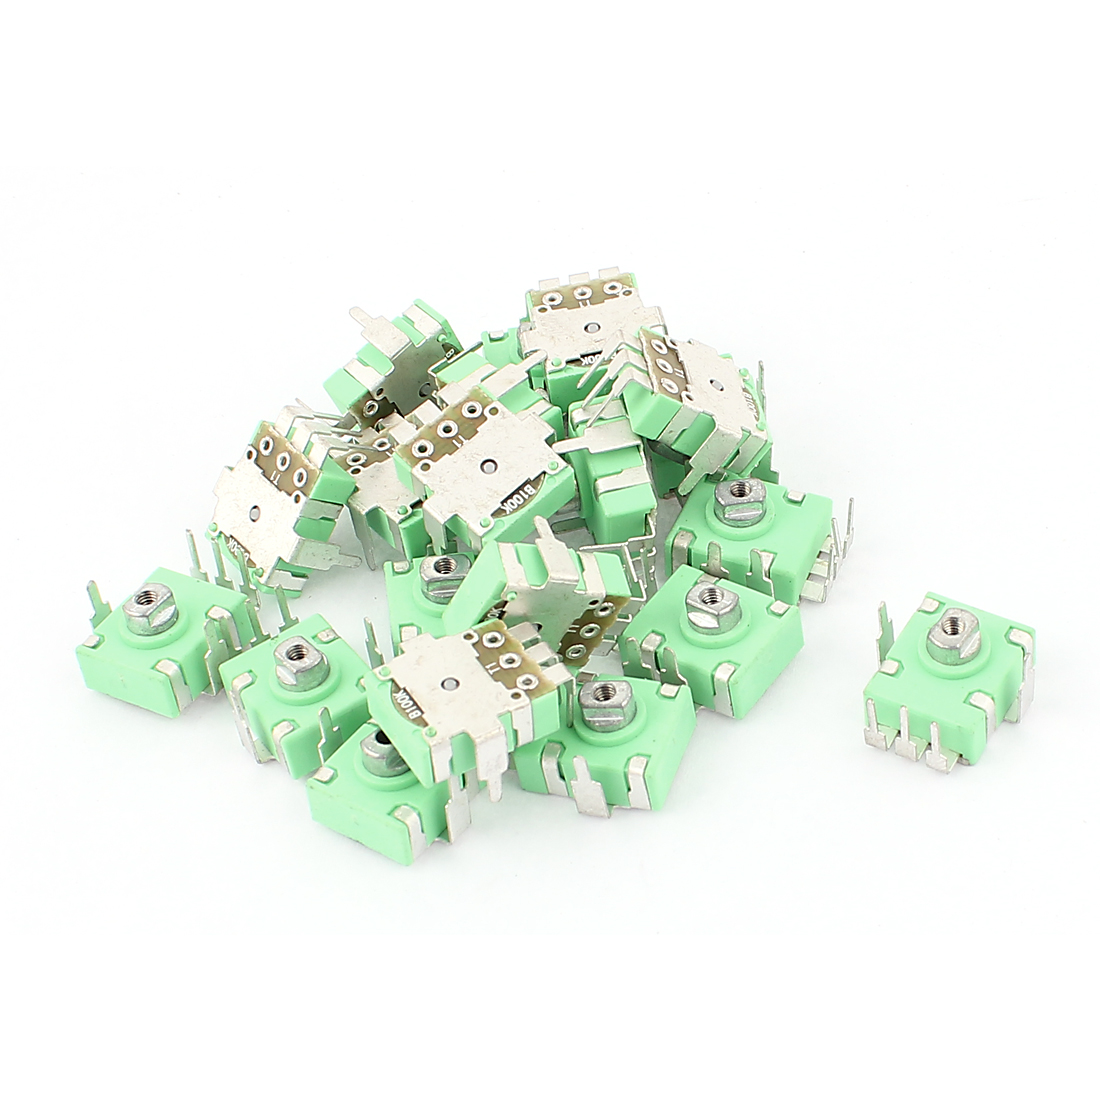 20Pcs Green Plastic Base 3 Terminals 100K Ohm PCB Mount Trimmer Potentiometer Resistors